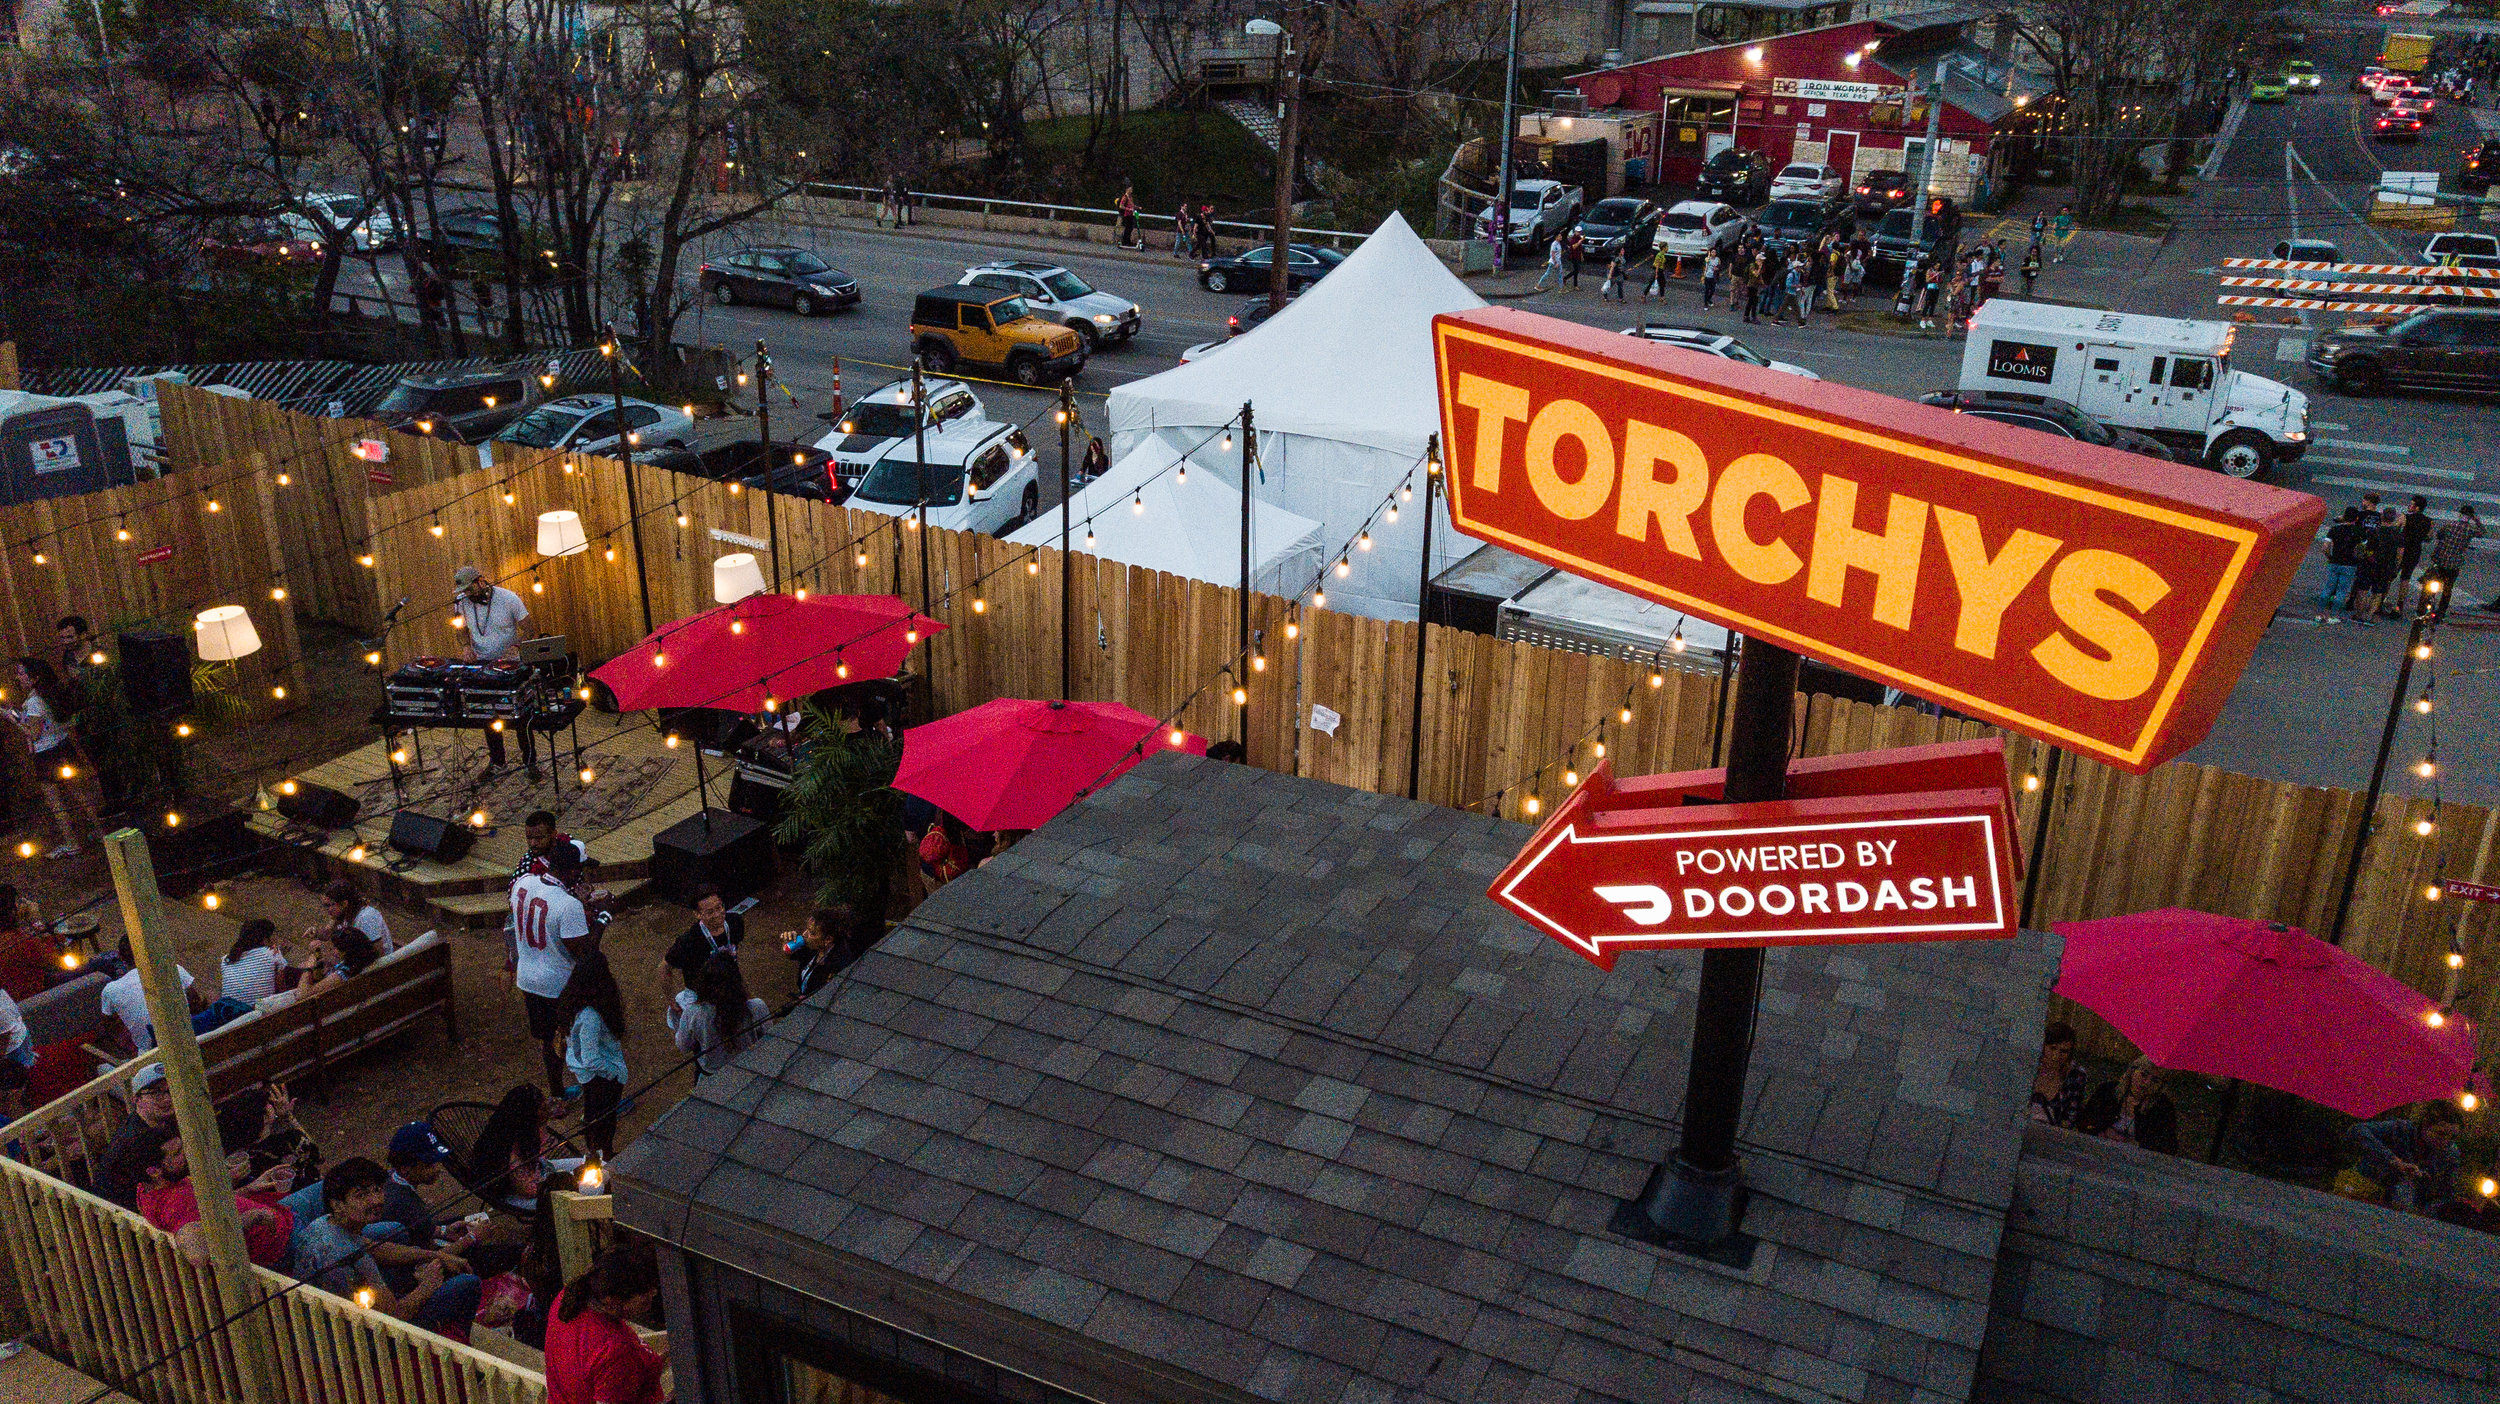 DOORDASH x TORCHYS SXSW   With tasty bites behind every door, we transformed a blank space for this one including everything from custom neon's to a purpose build tiny home. This combination of branding and talent such a Cee Lo Green made for an awesome party!